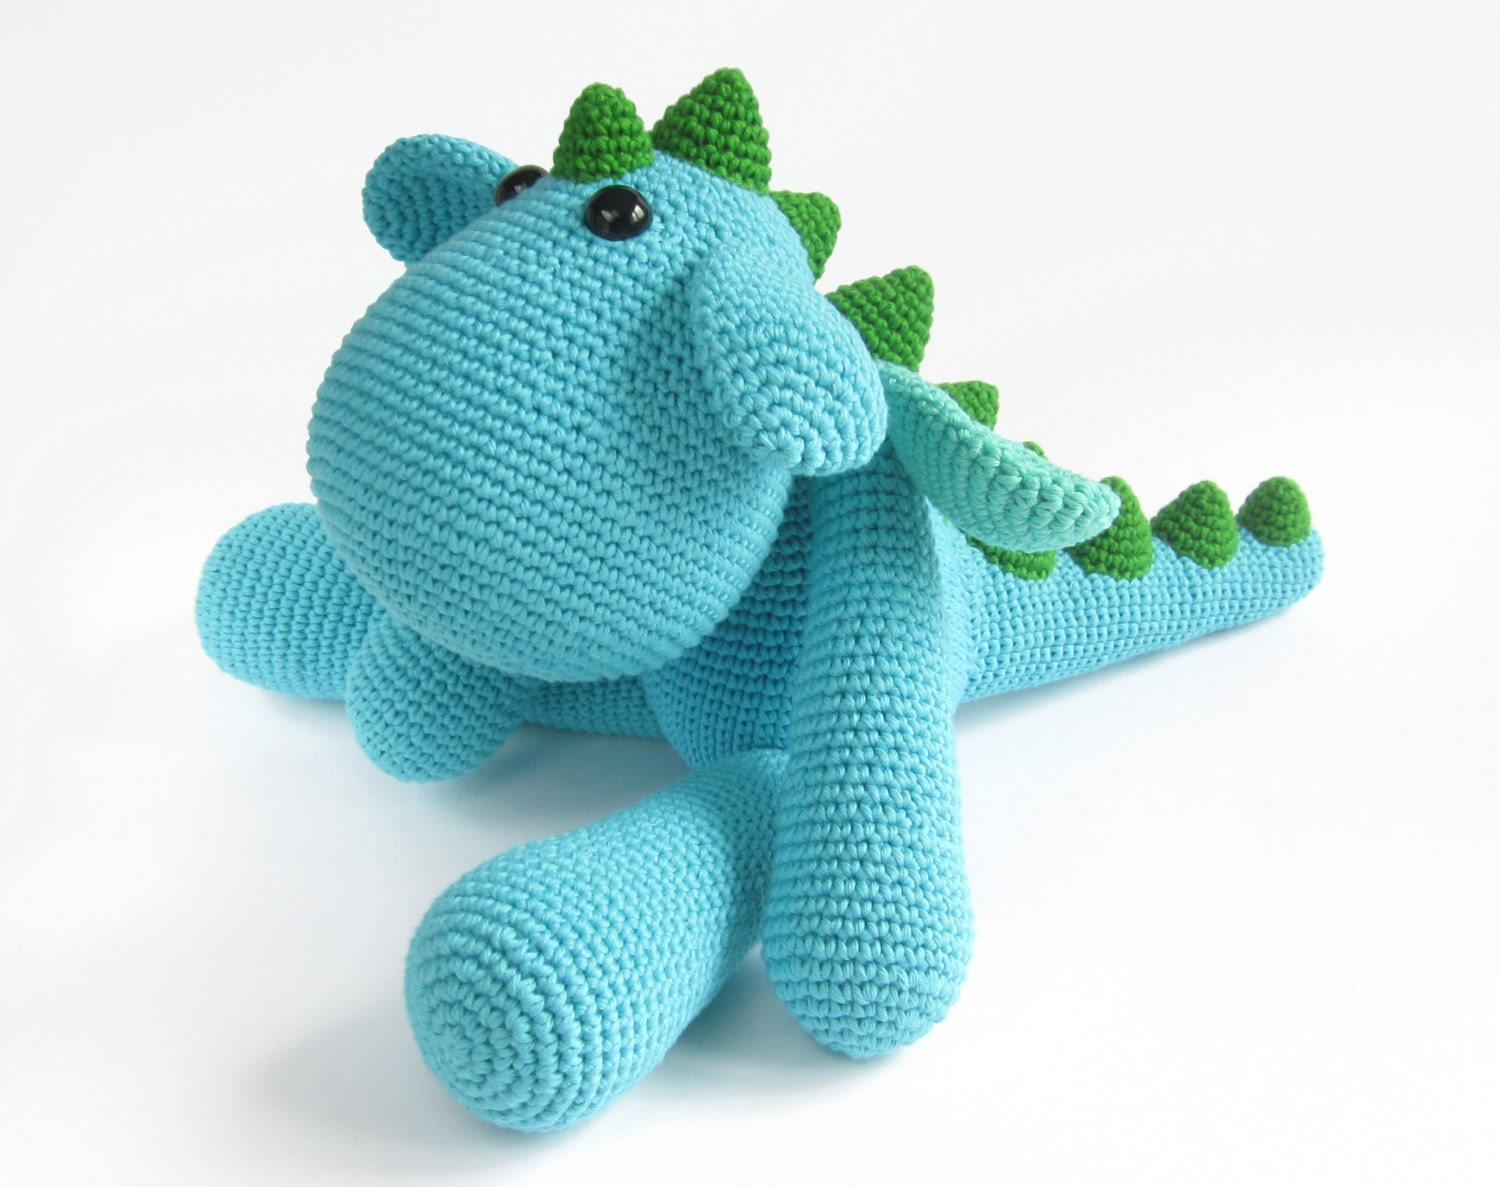 Crochet Dragon : PATTERN: Dragon Crochet pattern Dinosaur Stuffed animal Etsy